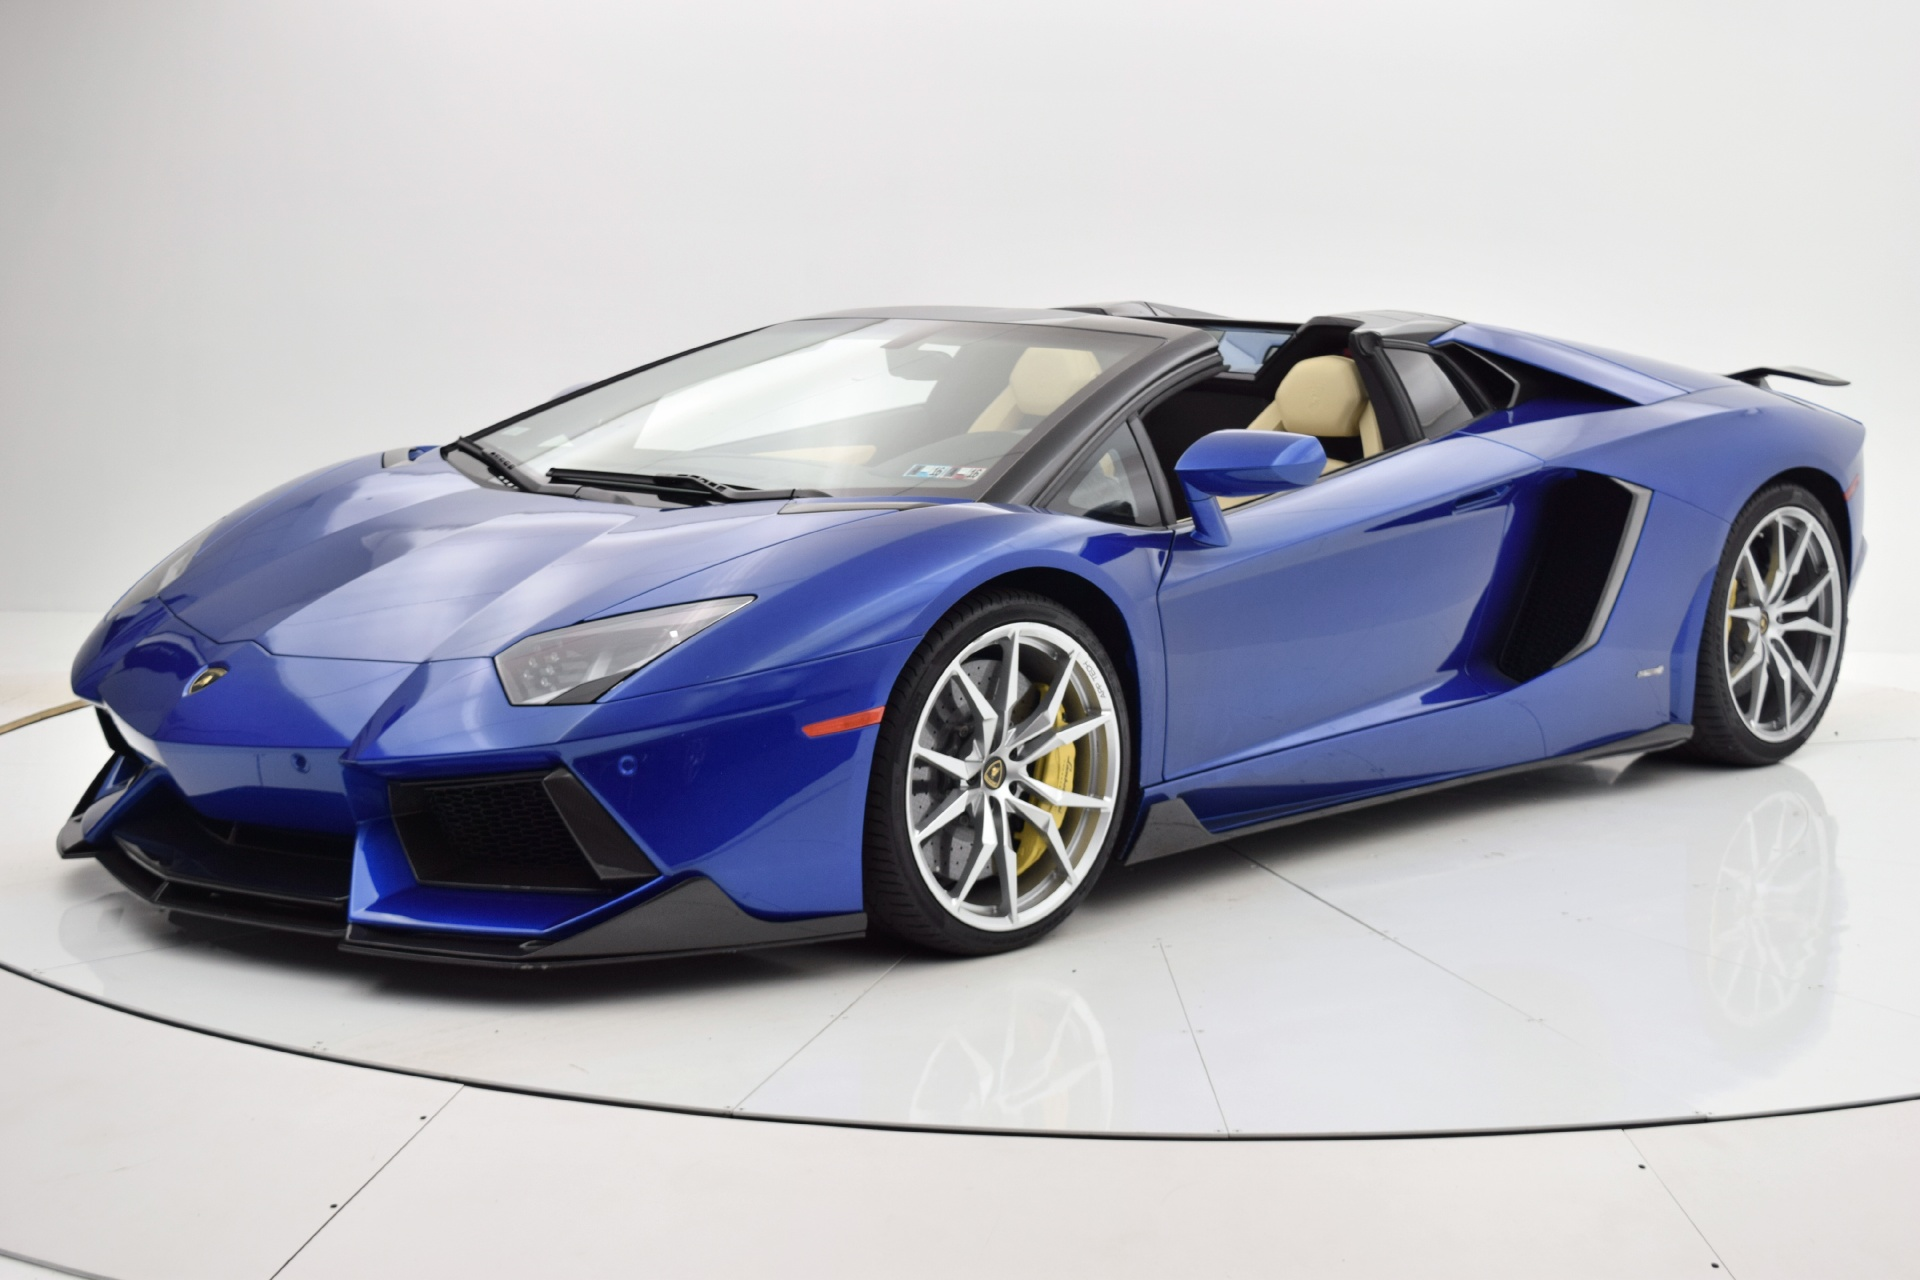 Used 2014 Lamborghini Aventador Roadster for sale Sold at F.C. Kerbeck Bentley Palmyra N.J. in Palmyra NJ 08065 2